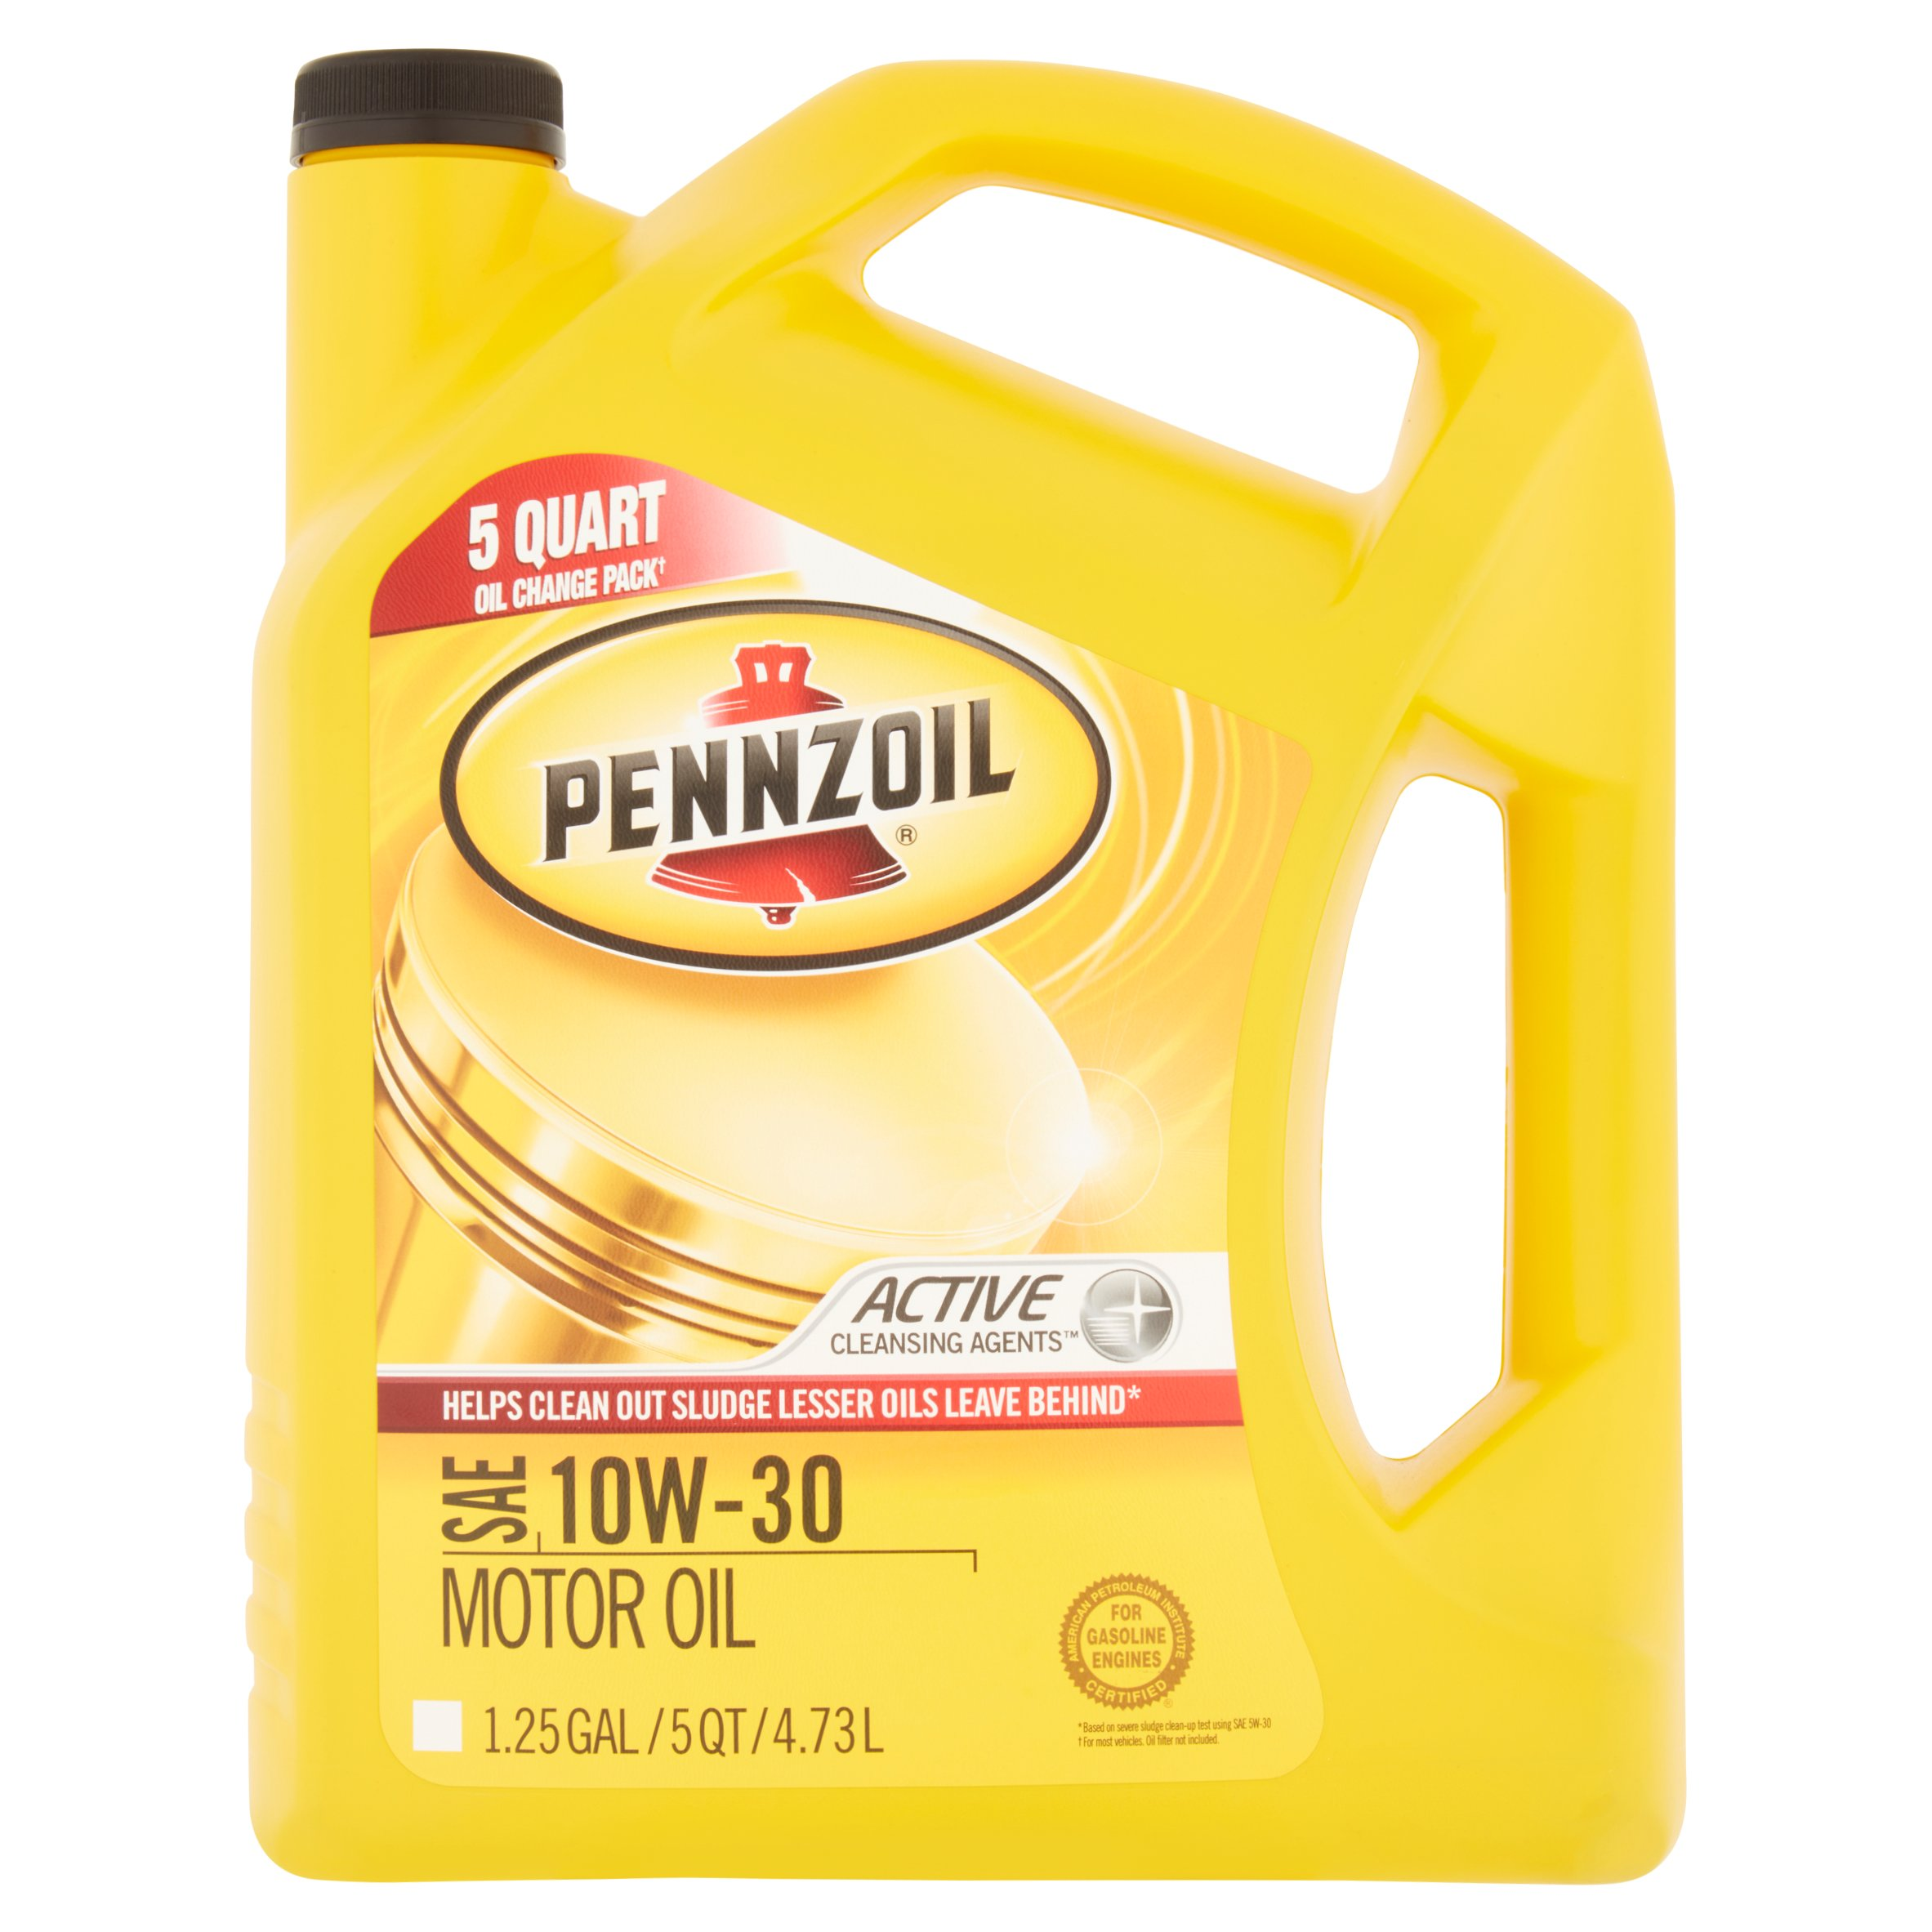 Pennzoil Active Cleansing Agents SAE 10W-30 Motor Oil, 1.25 gal